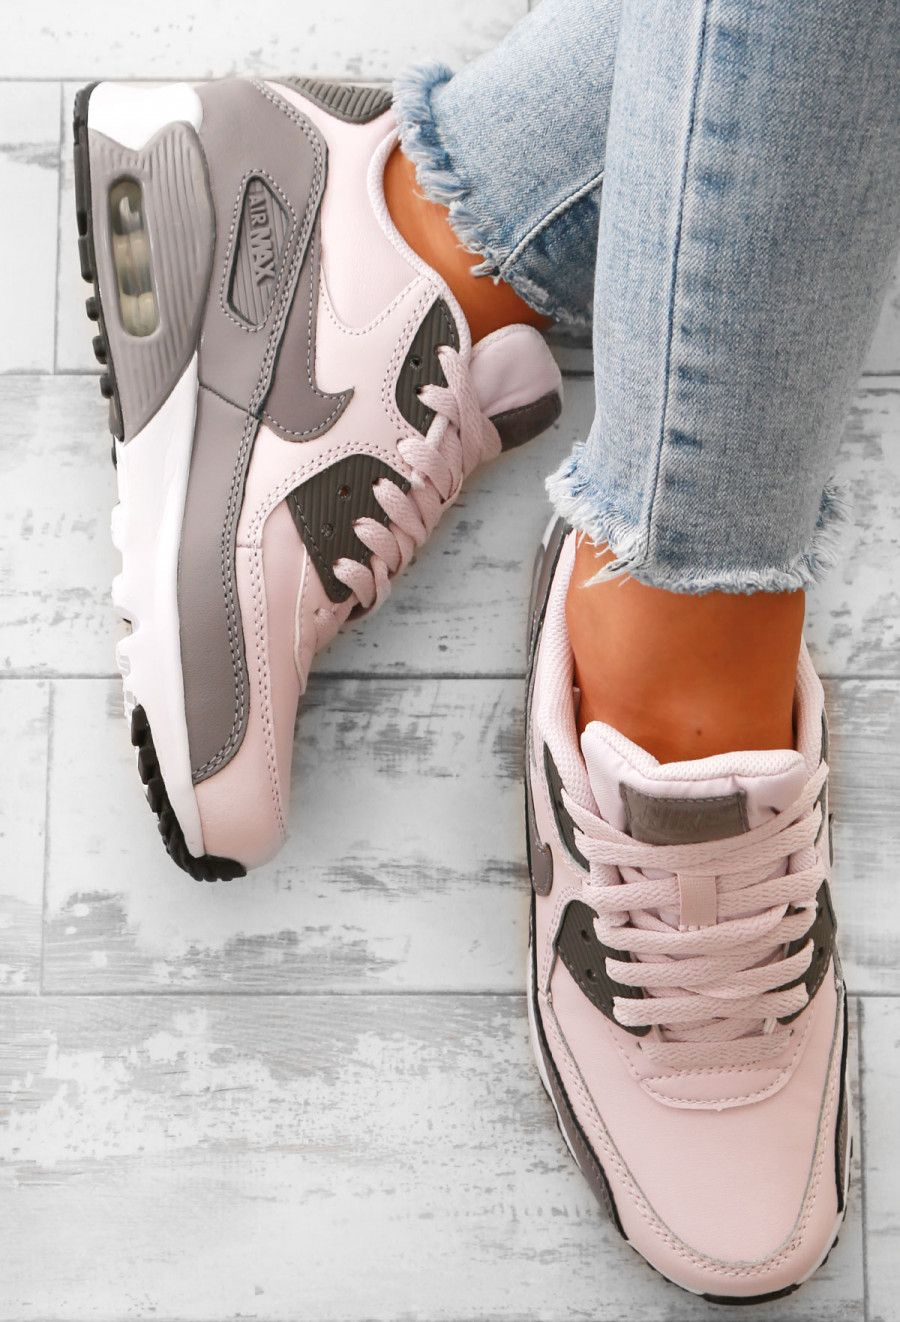 designer fashion 4c2c4 6d514 Nike Air Max 90 Grey and Rose Trainers   Pink Boutique